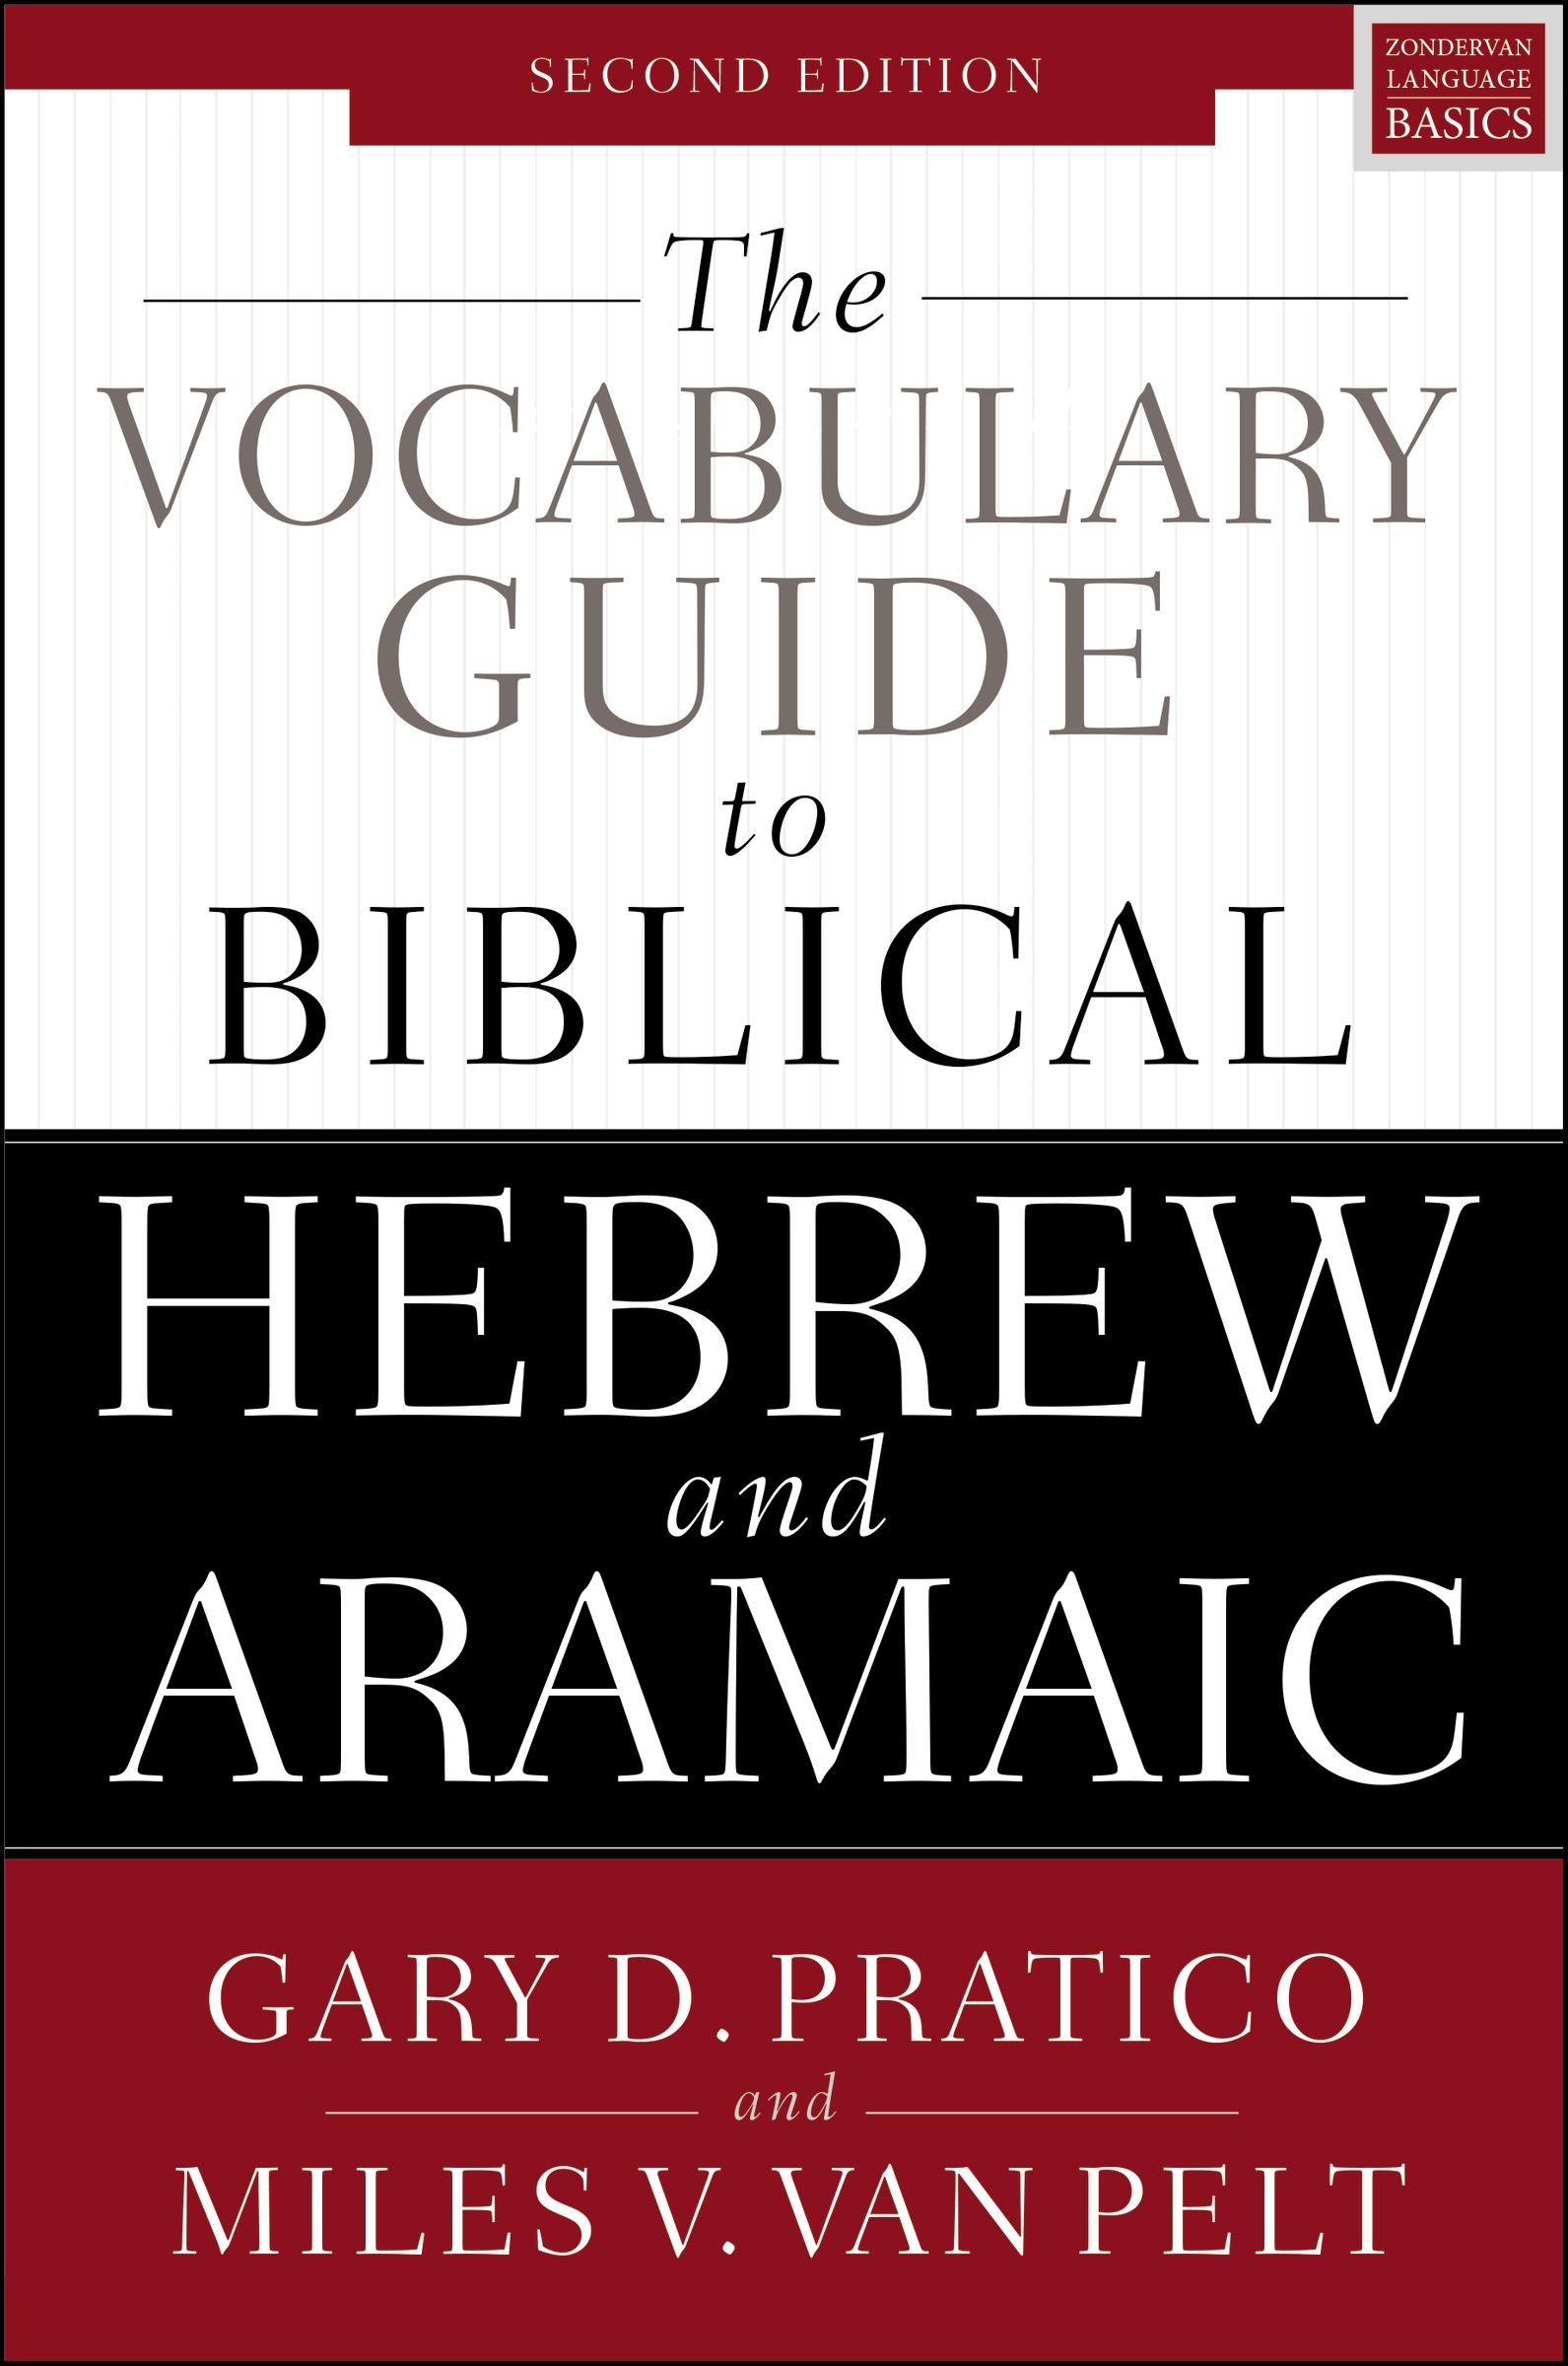 The Vocabulary Guide To Biblical Hebrew And Aramaic  Second Edition